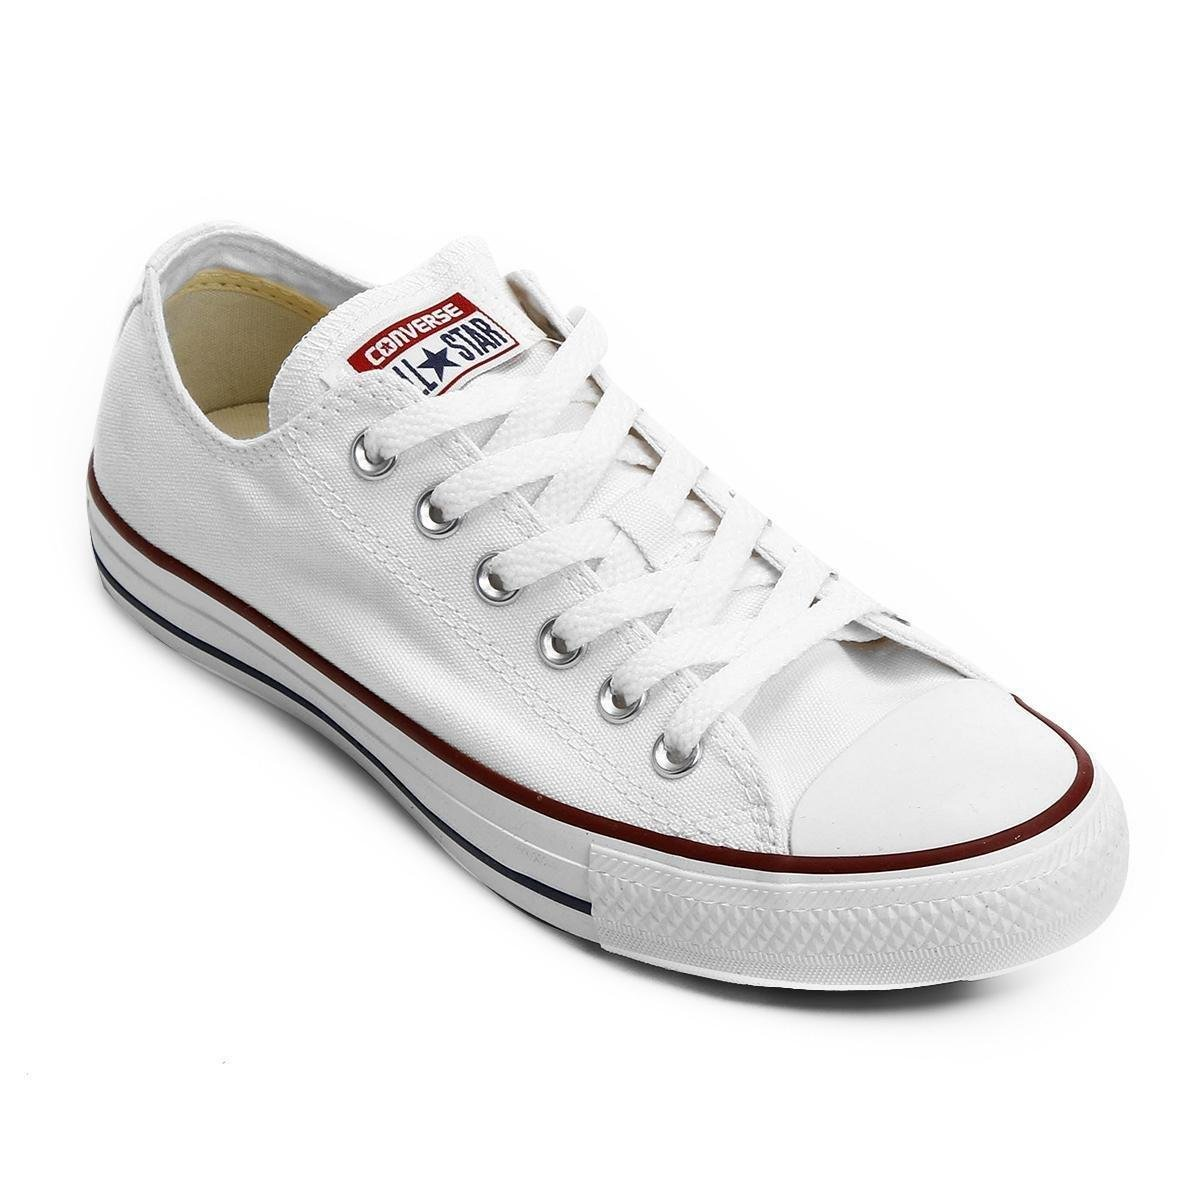 0614961f949 Tênis Converse All Star Ct As Core Ox